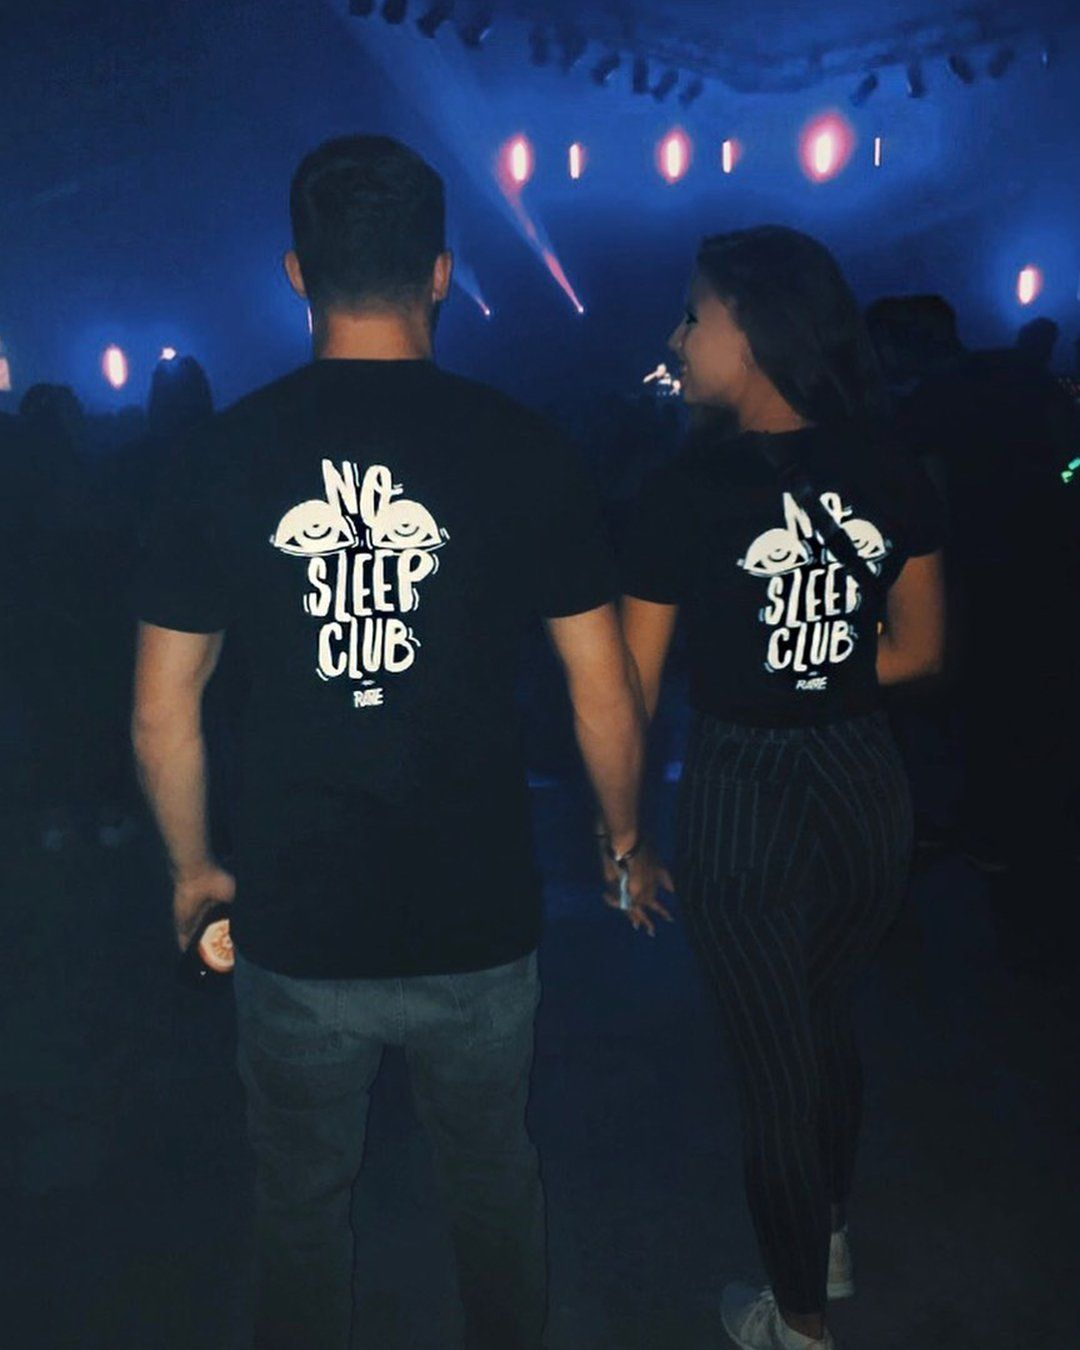 No Sleep Club T-Shirt in black